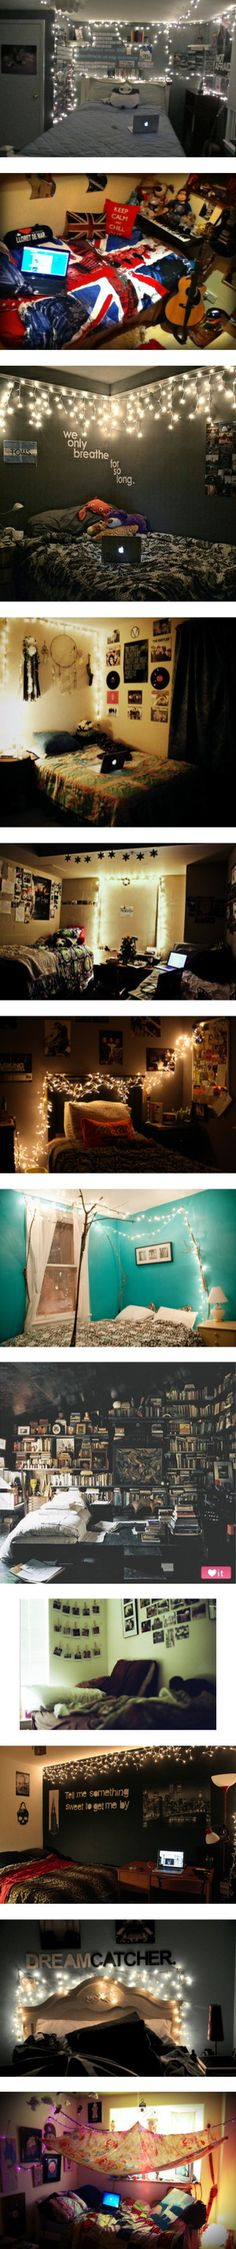 """Indie Bedroom Inspiration"" by for-the-love-of-tips ❤ liked on Polyvore"